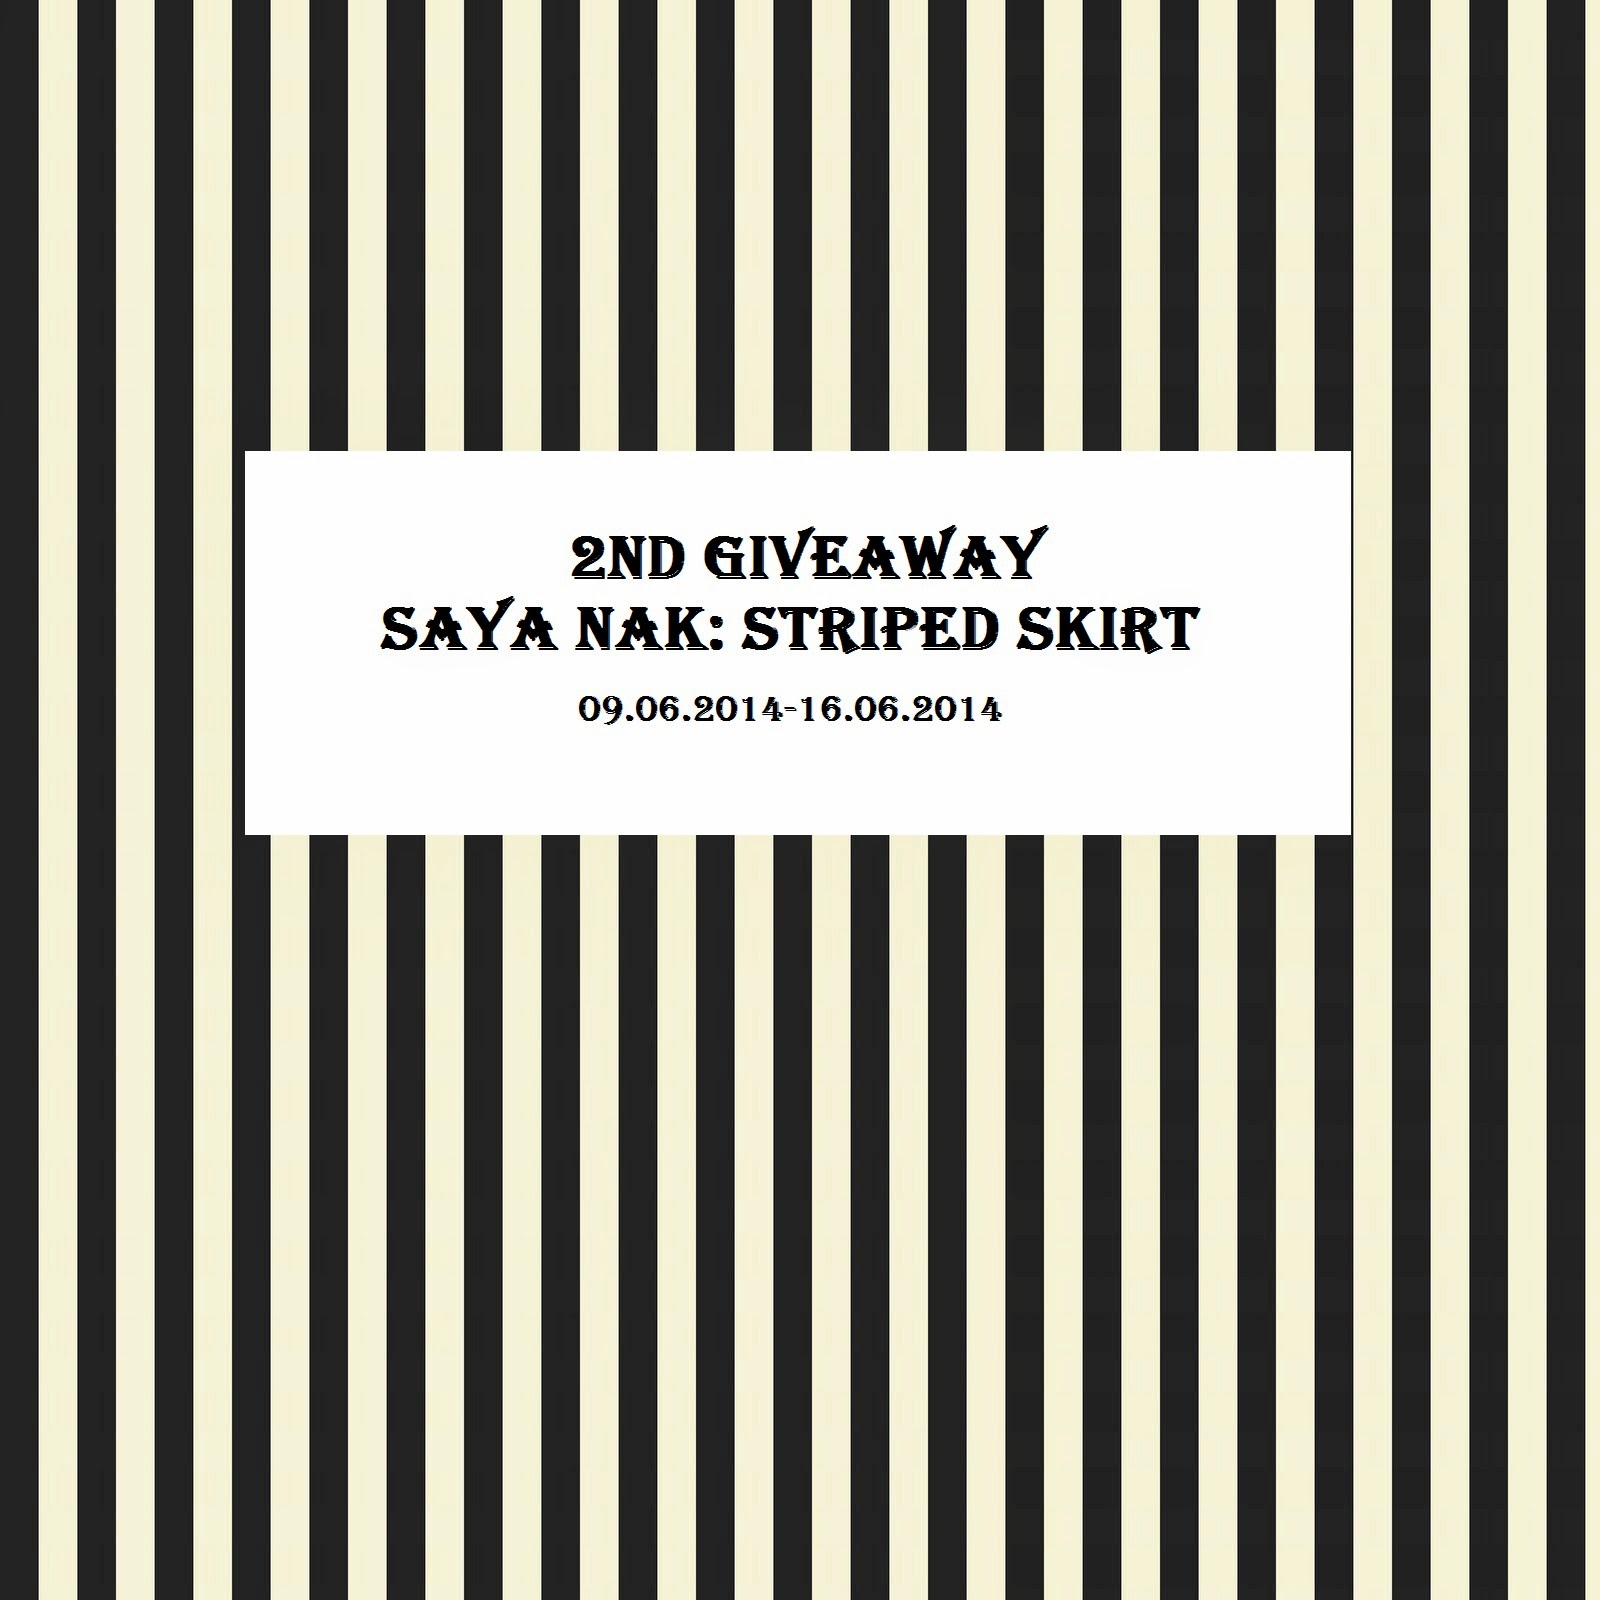 http://kasutkaca15.blogspot.com/2014/06/2nd-giveaway-saya-nak-striped-skirt.html